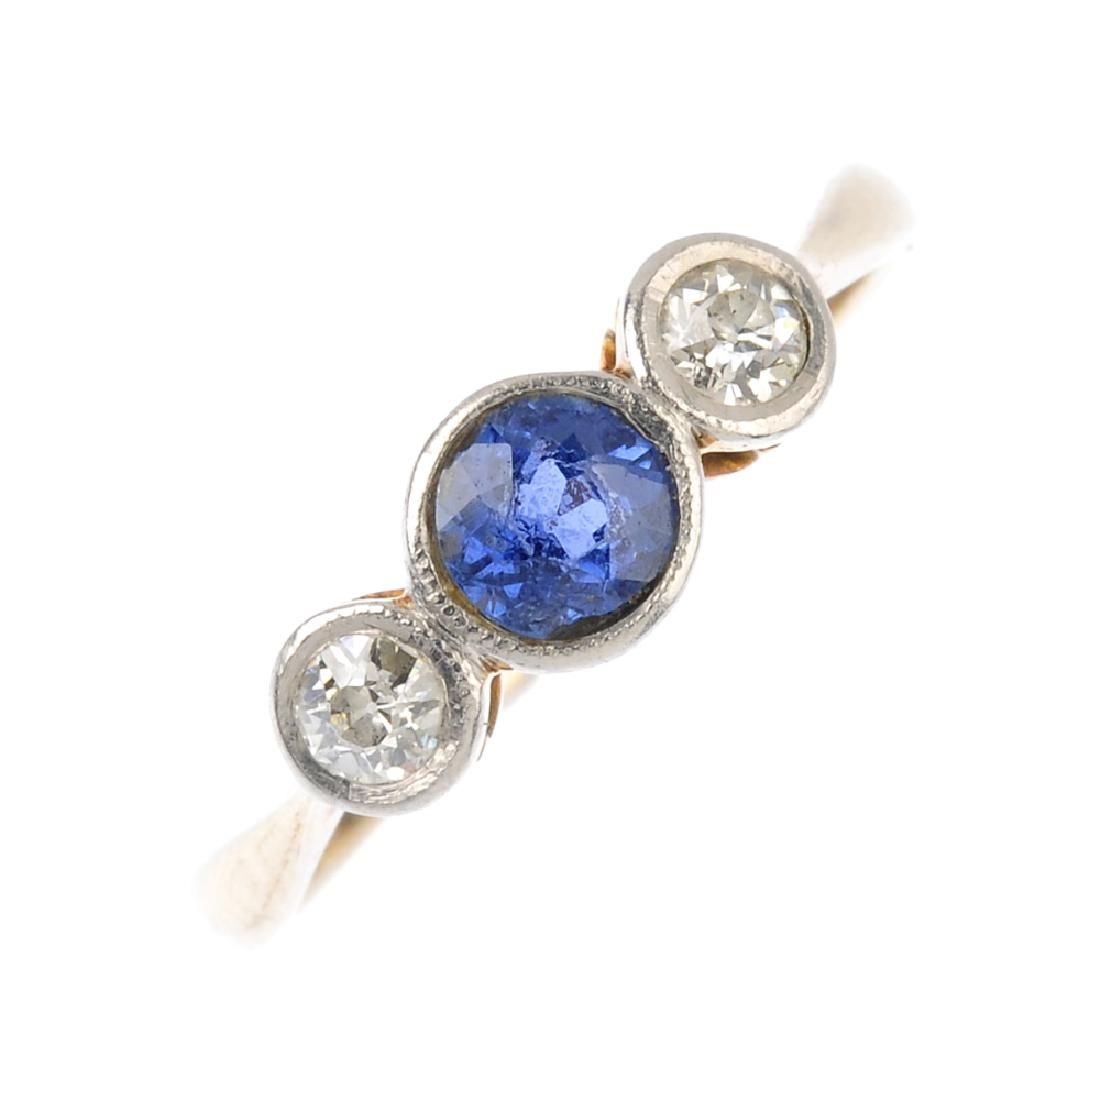 An early 20th century gold sapphire and diamond